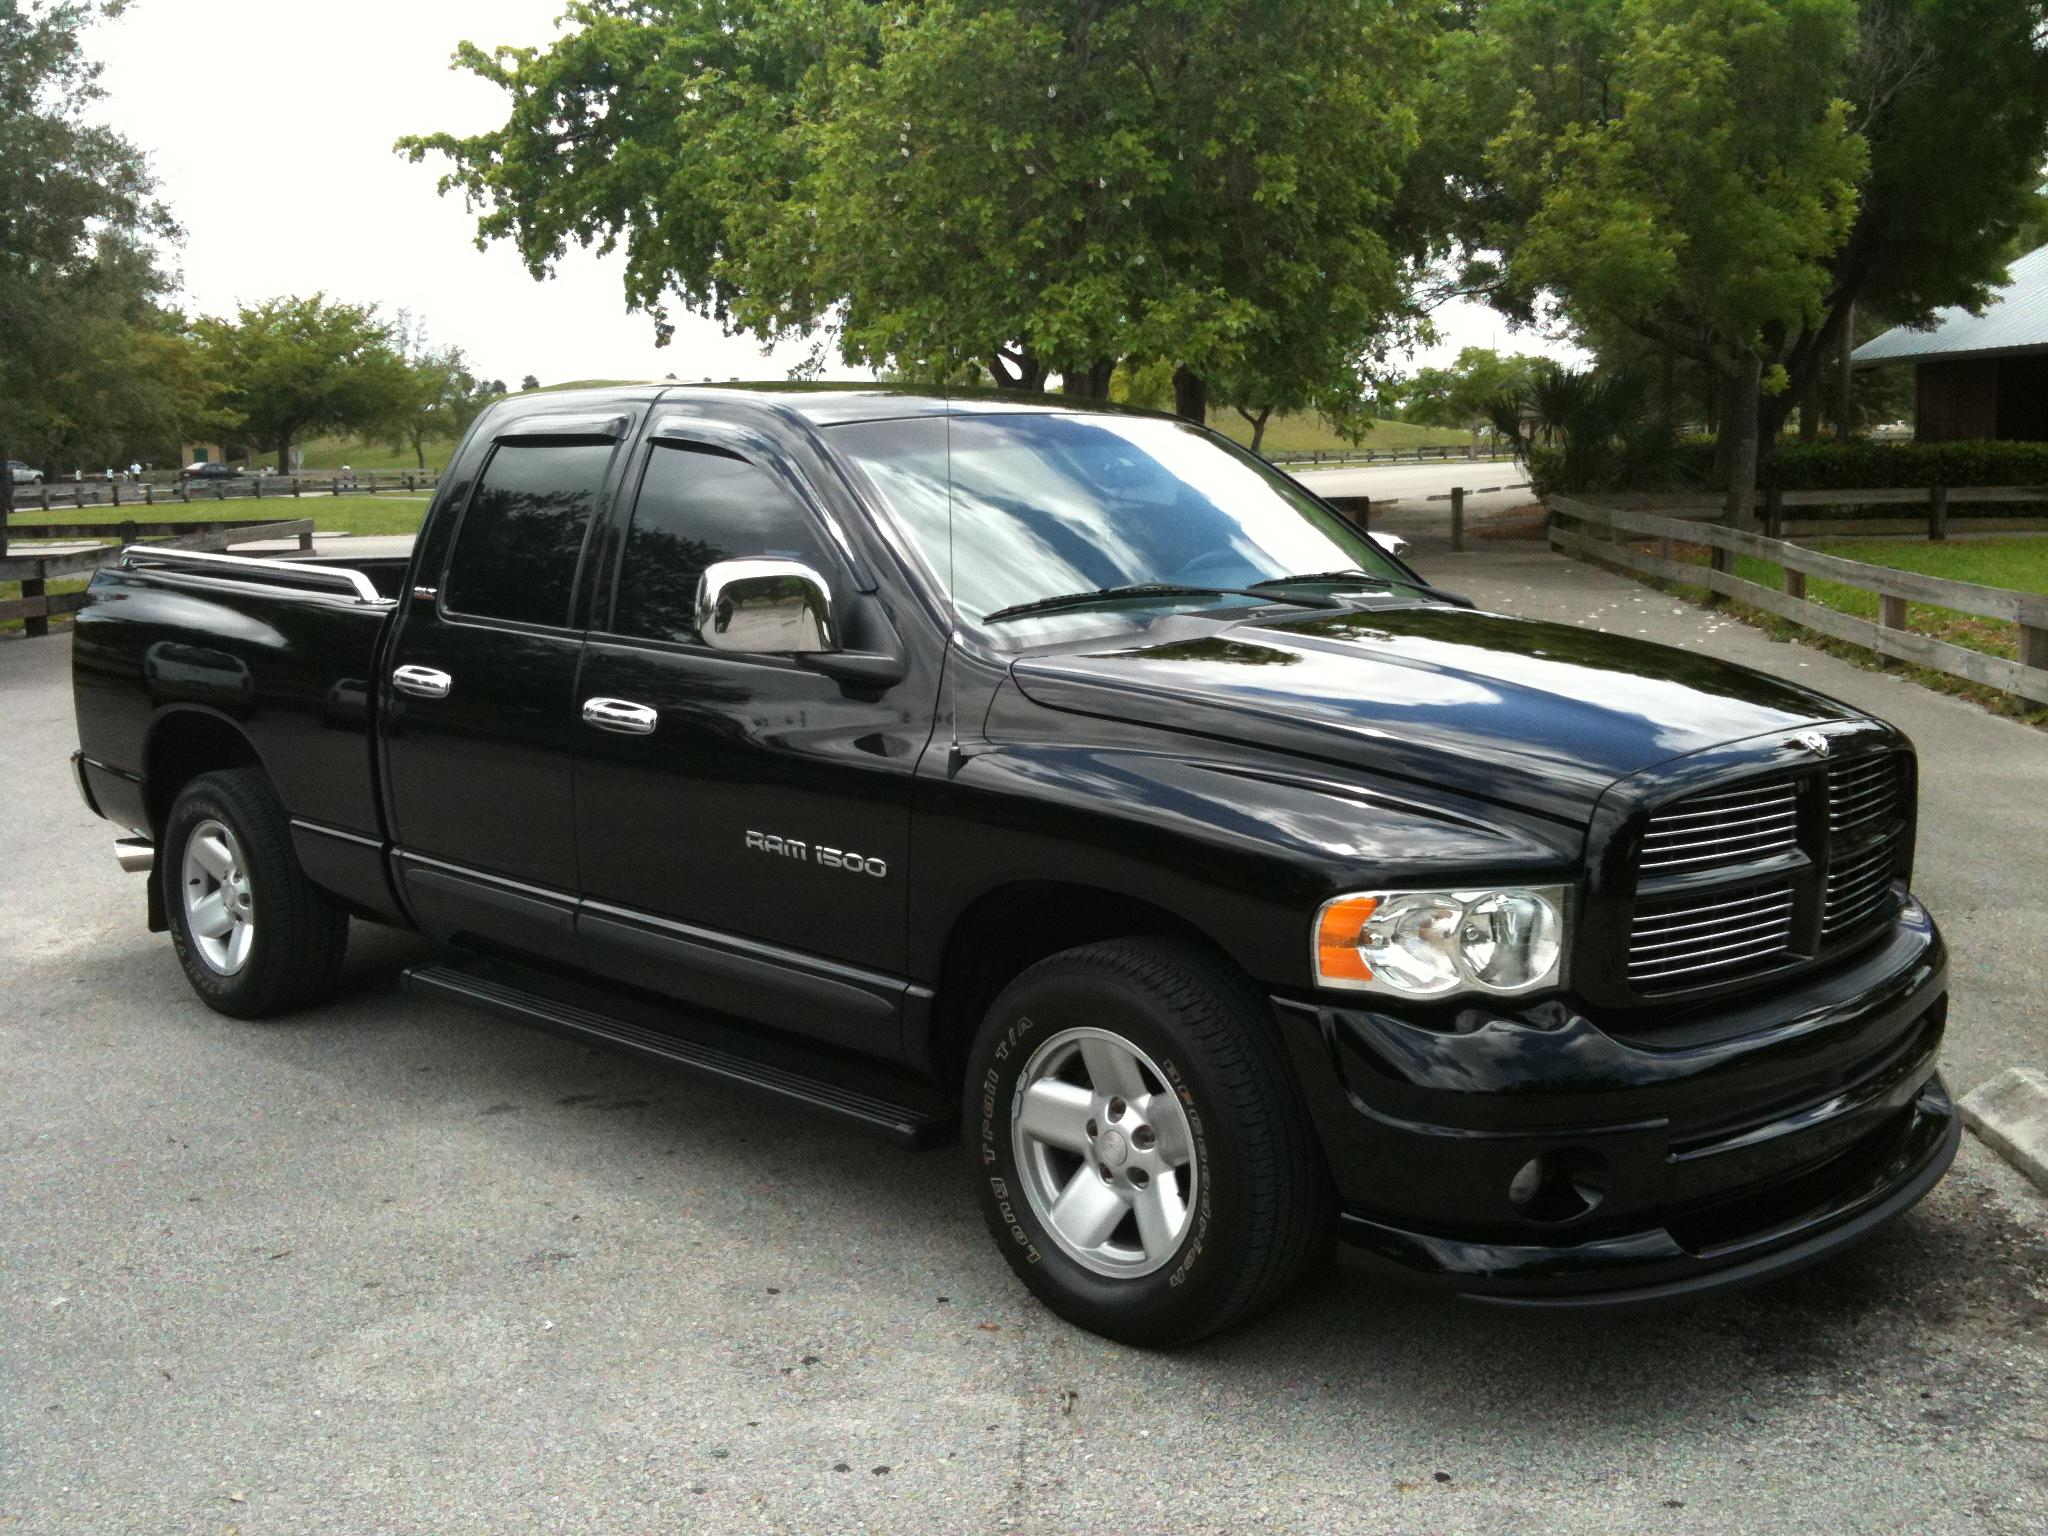 superiorstyles 39 s 2002 dodge ram 1500 quad cab short bed in bronx ny. Black Bedroom Furniture Sets. Home Design Ideas